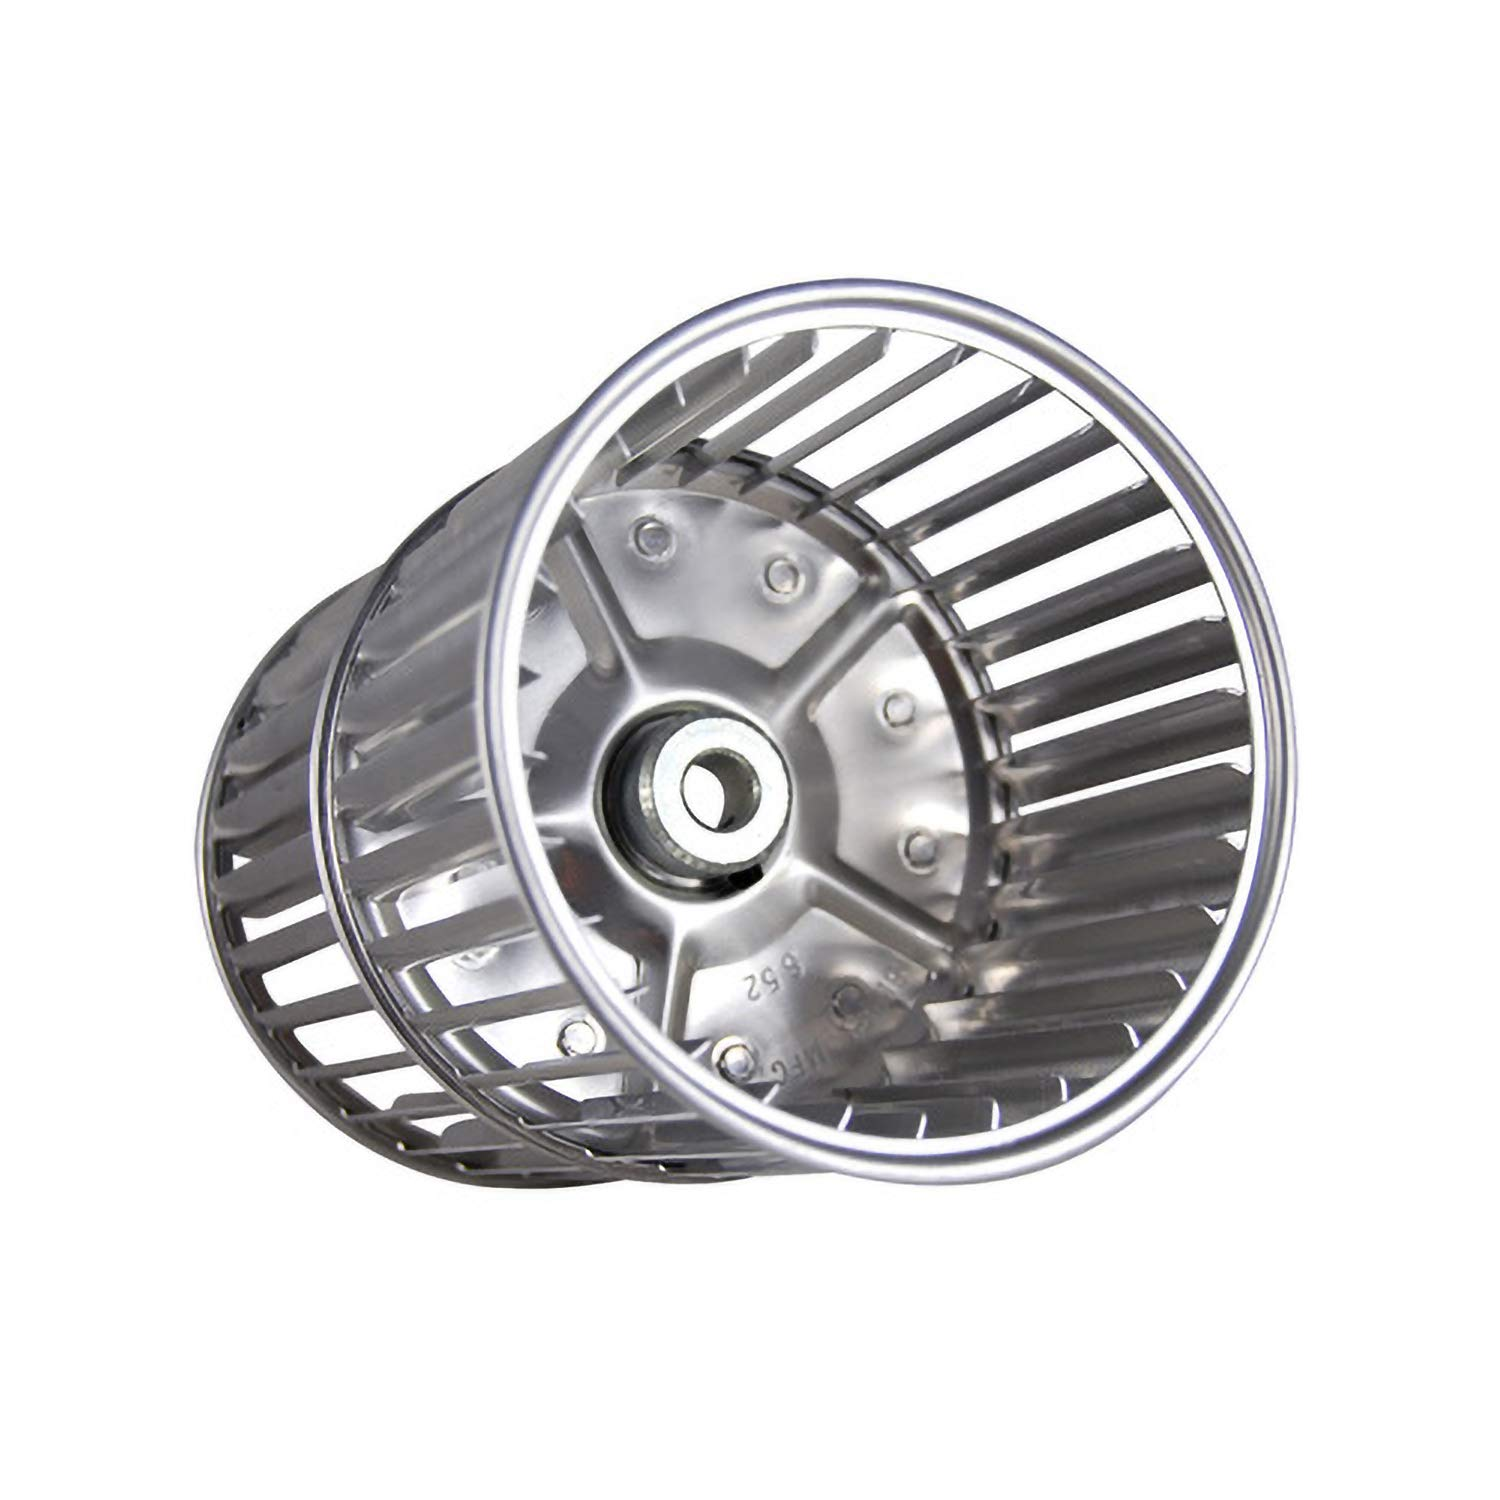 Packard Selling and selling L02895806 Lau Double Inlet Blower 5 3 Diameter Raleigh Mall 4